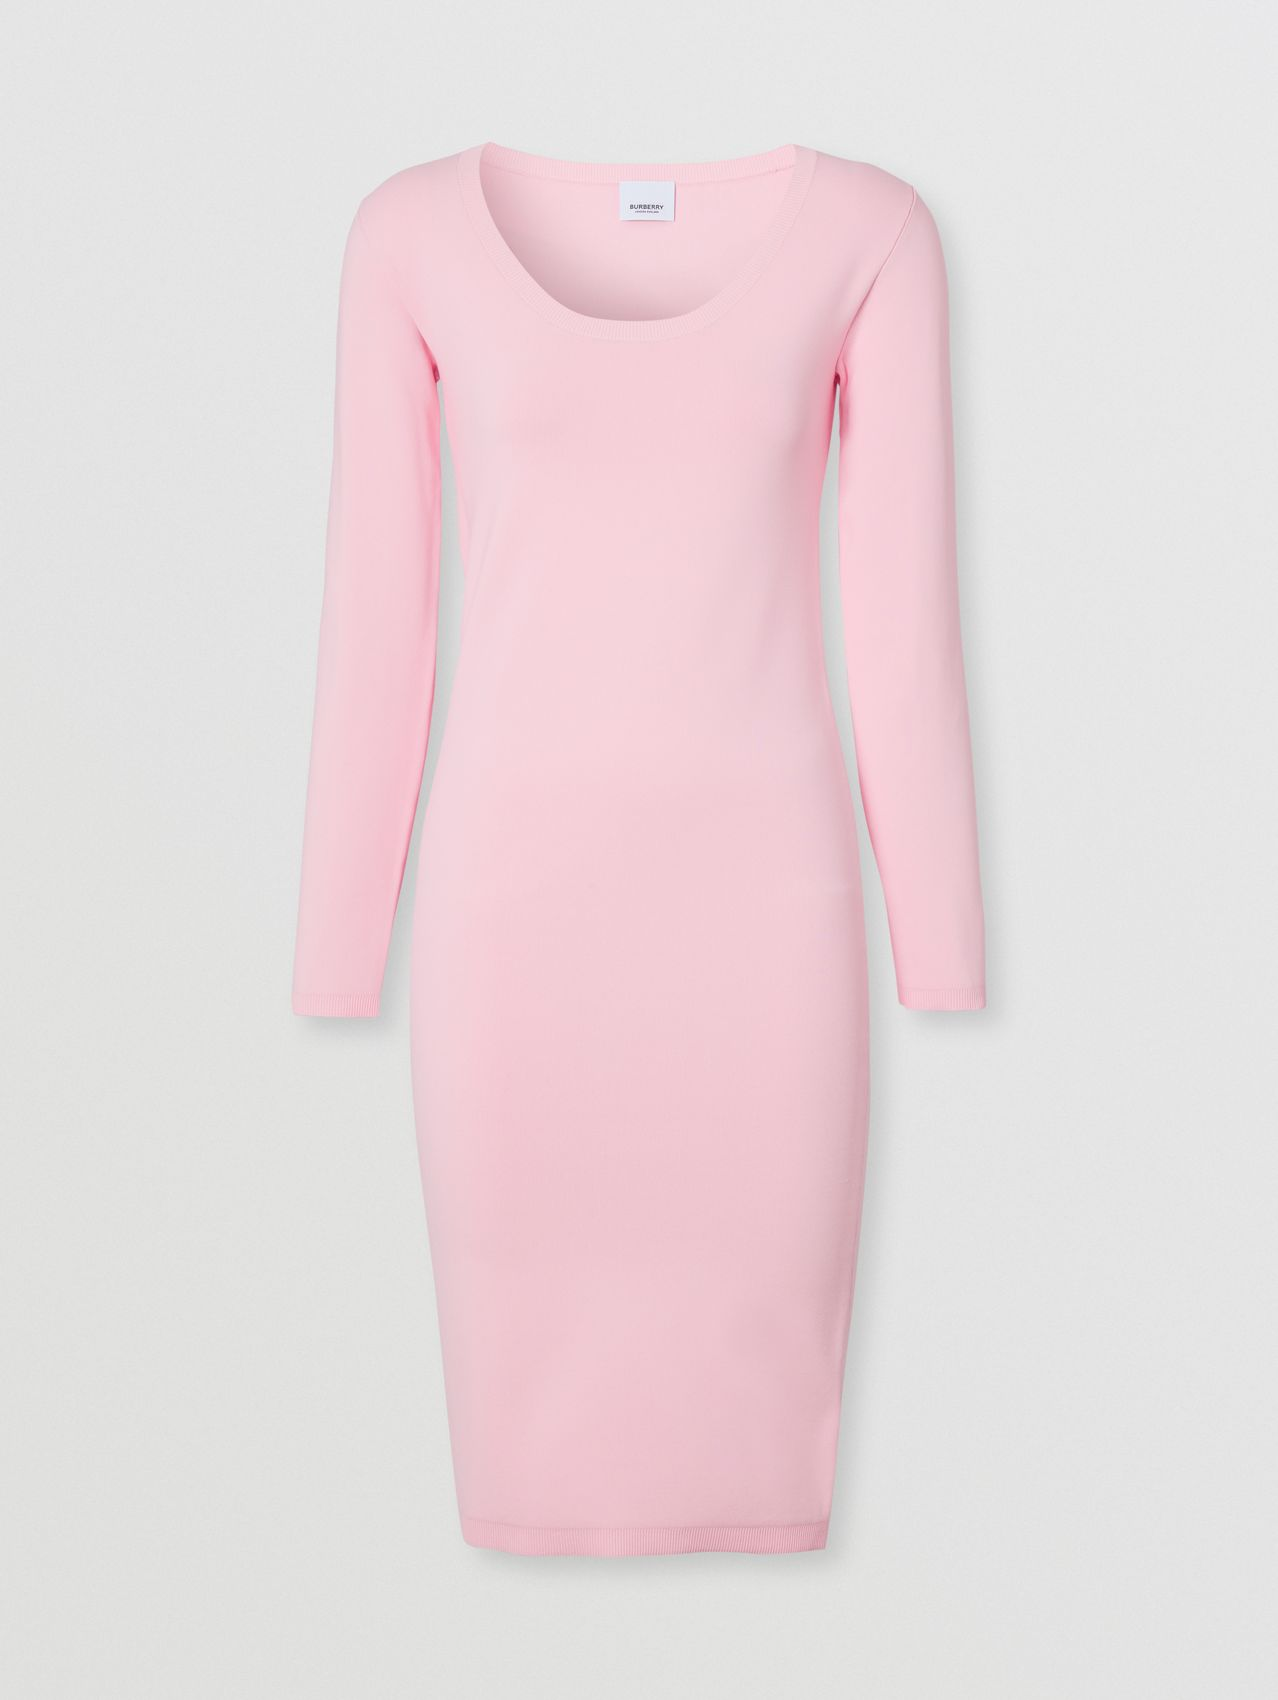 Long-sleeve Monogram Motif Stretch Jersey Dress in Orchid Pink